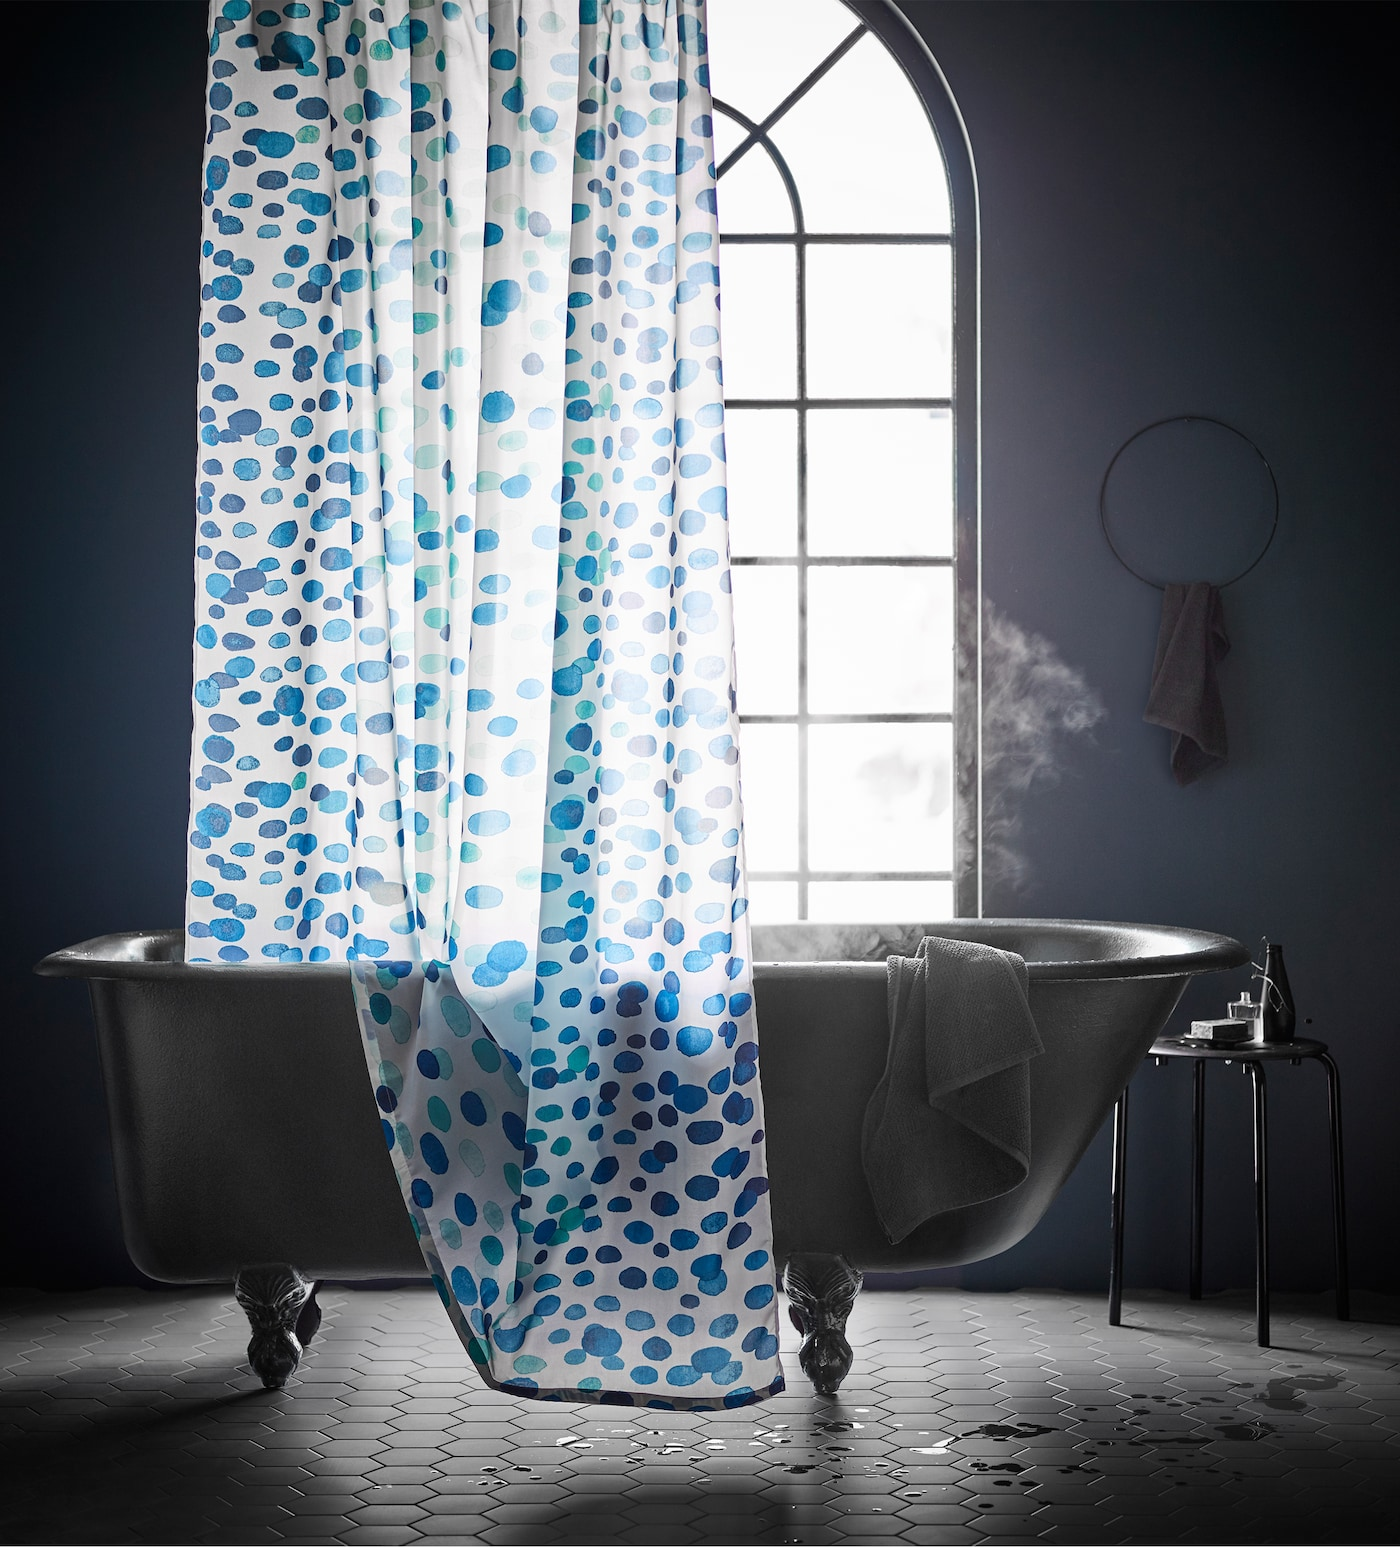 A bathroom with a bathtub on feet filled with hot water and a white shower curtain with splashes of blue and turquoise.